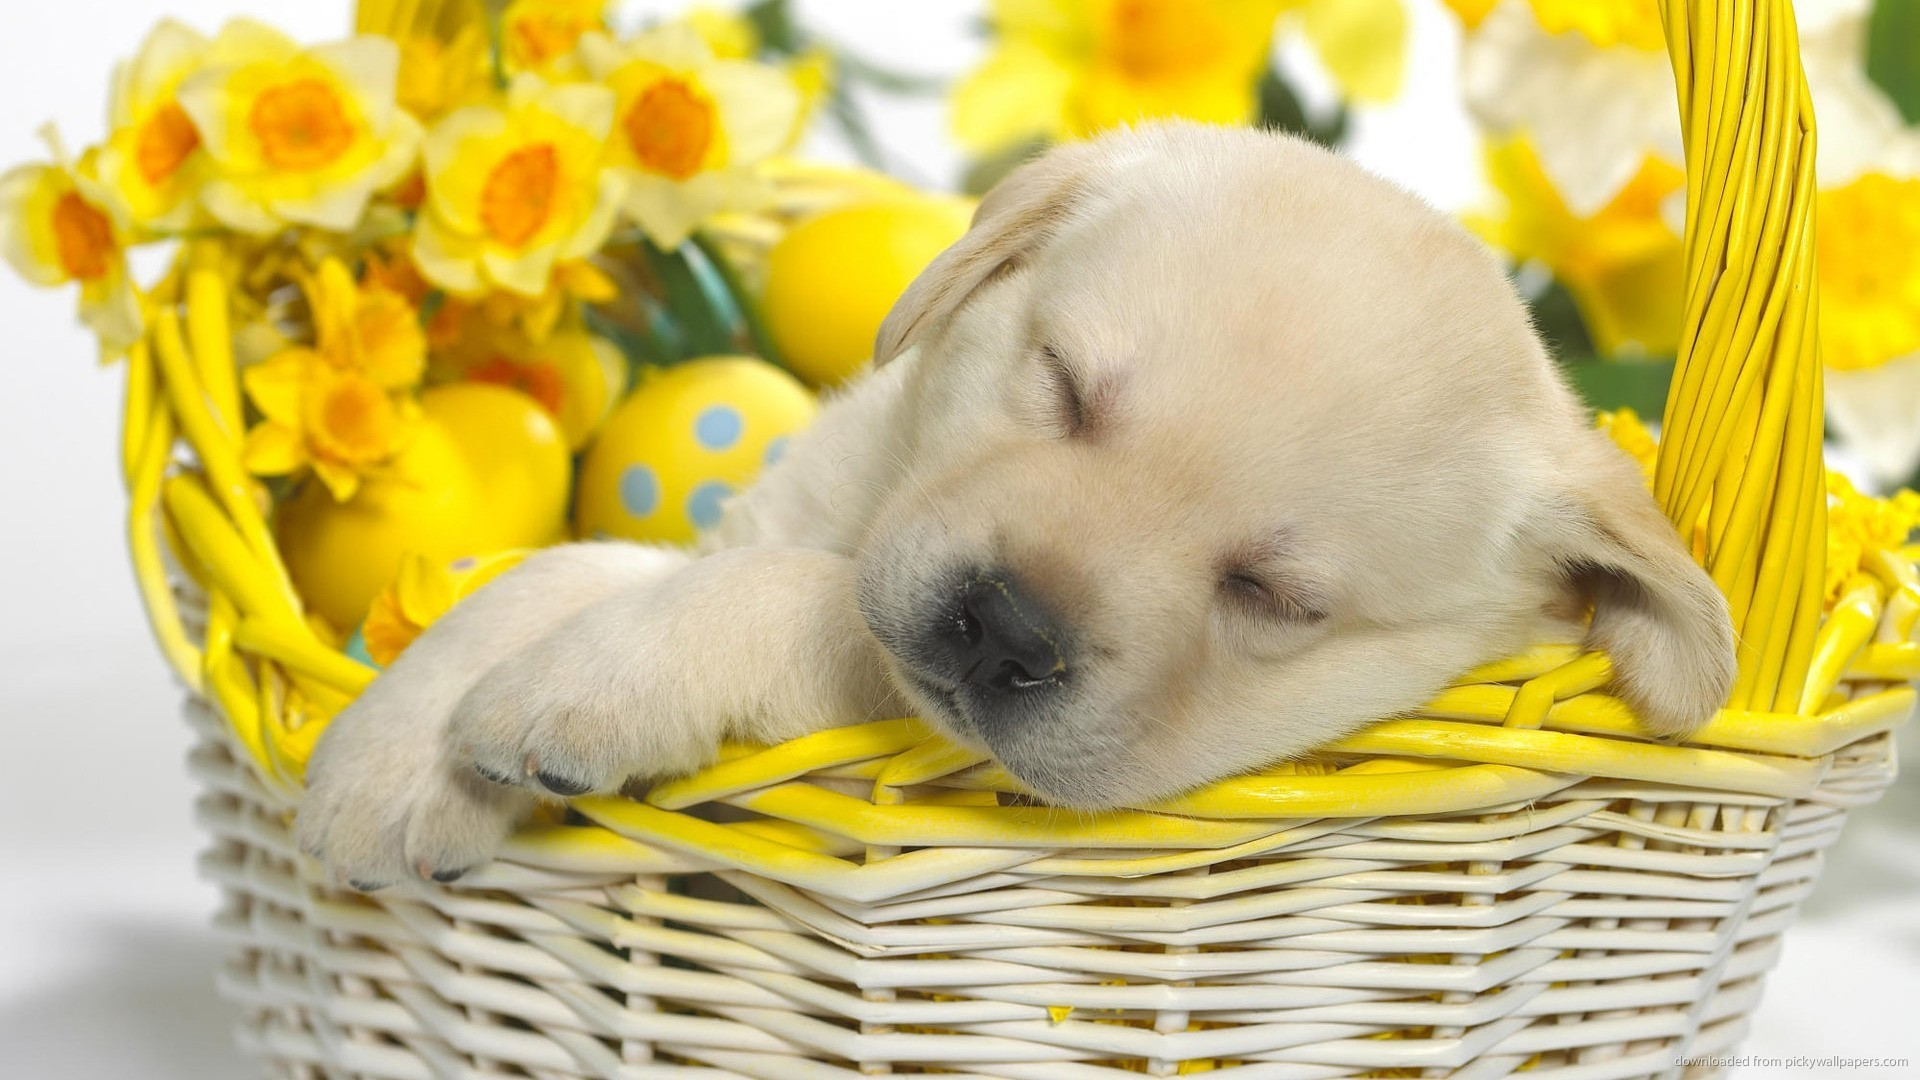 Cute Easter Basket Wallpaper